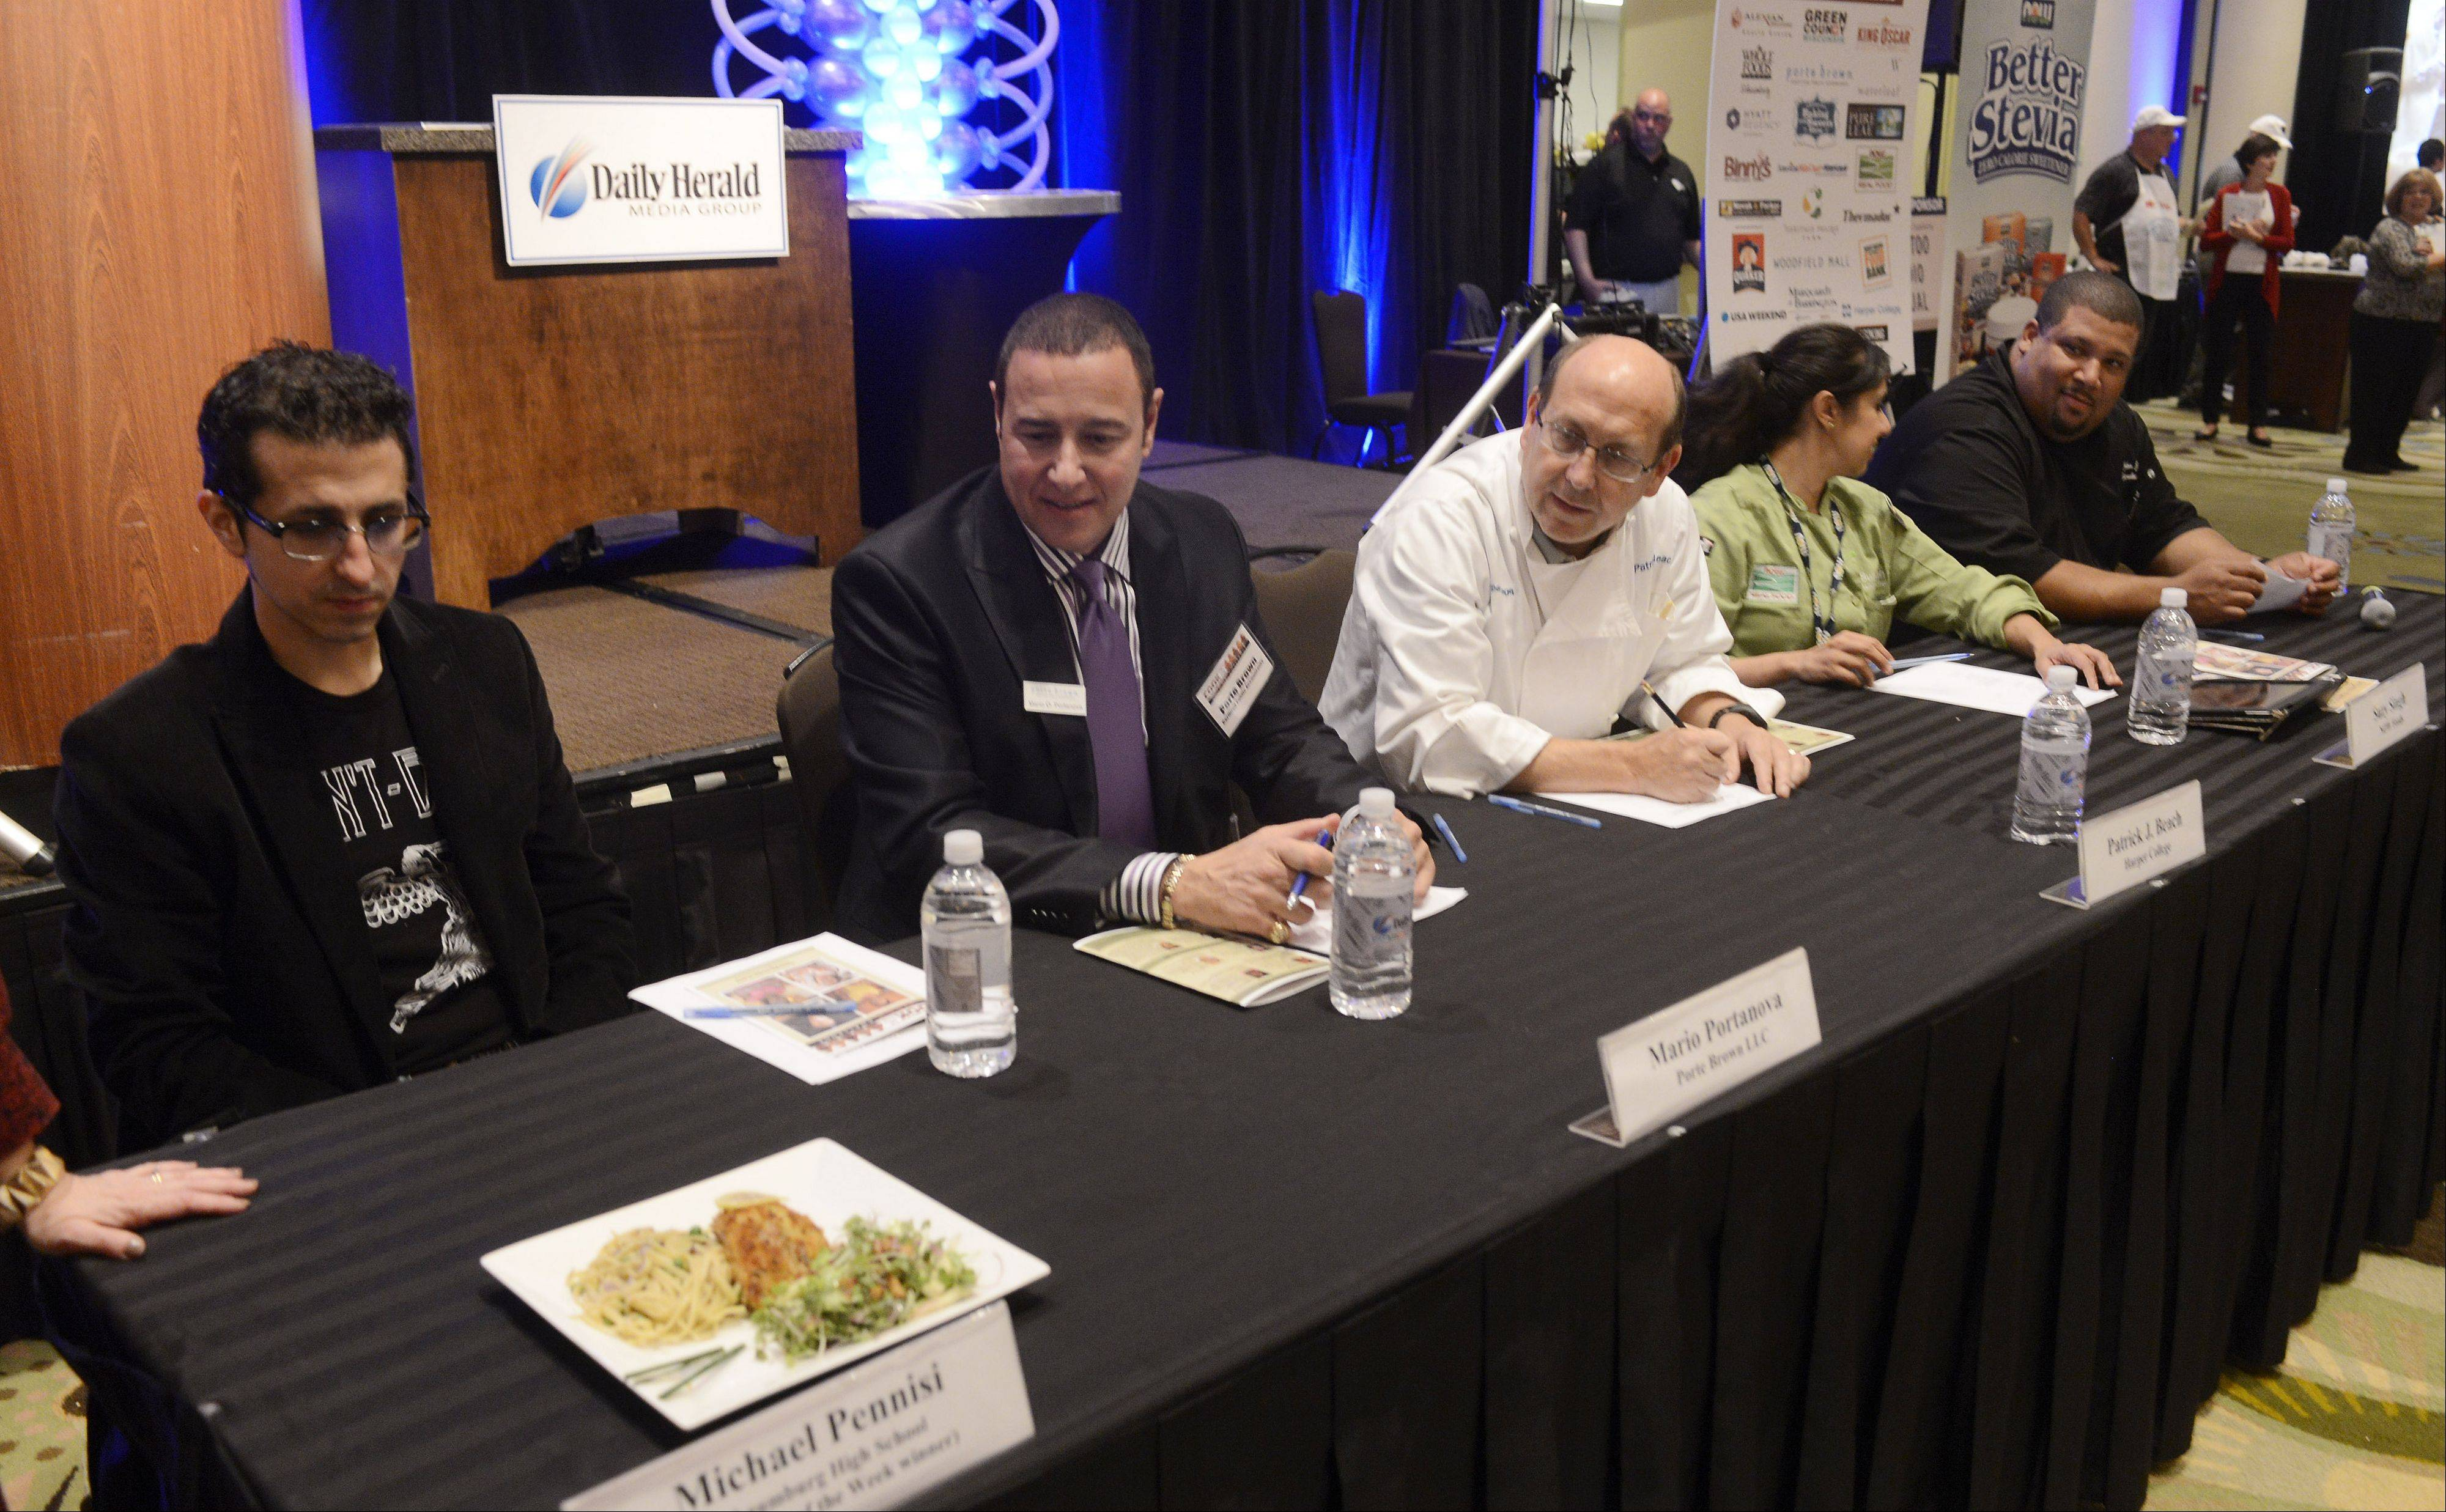 Judges wait to view and taste the first dish during the Daily Herald Cook of the Week Cookoff finals, held at the Hyatt Regency Schaumburg Wednesday.